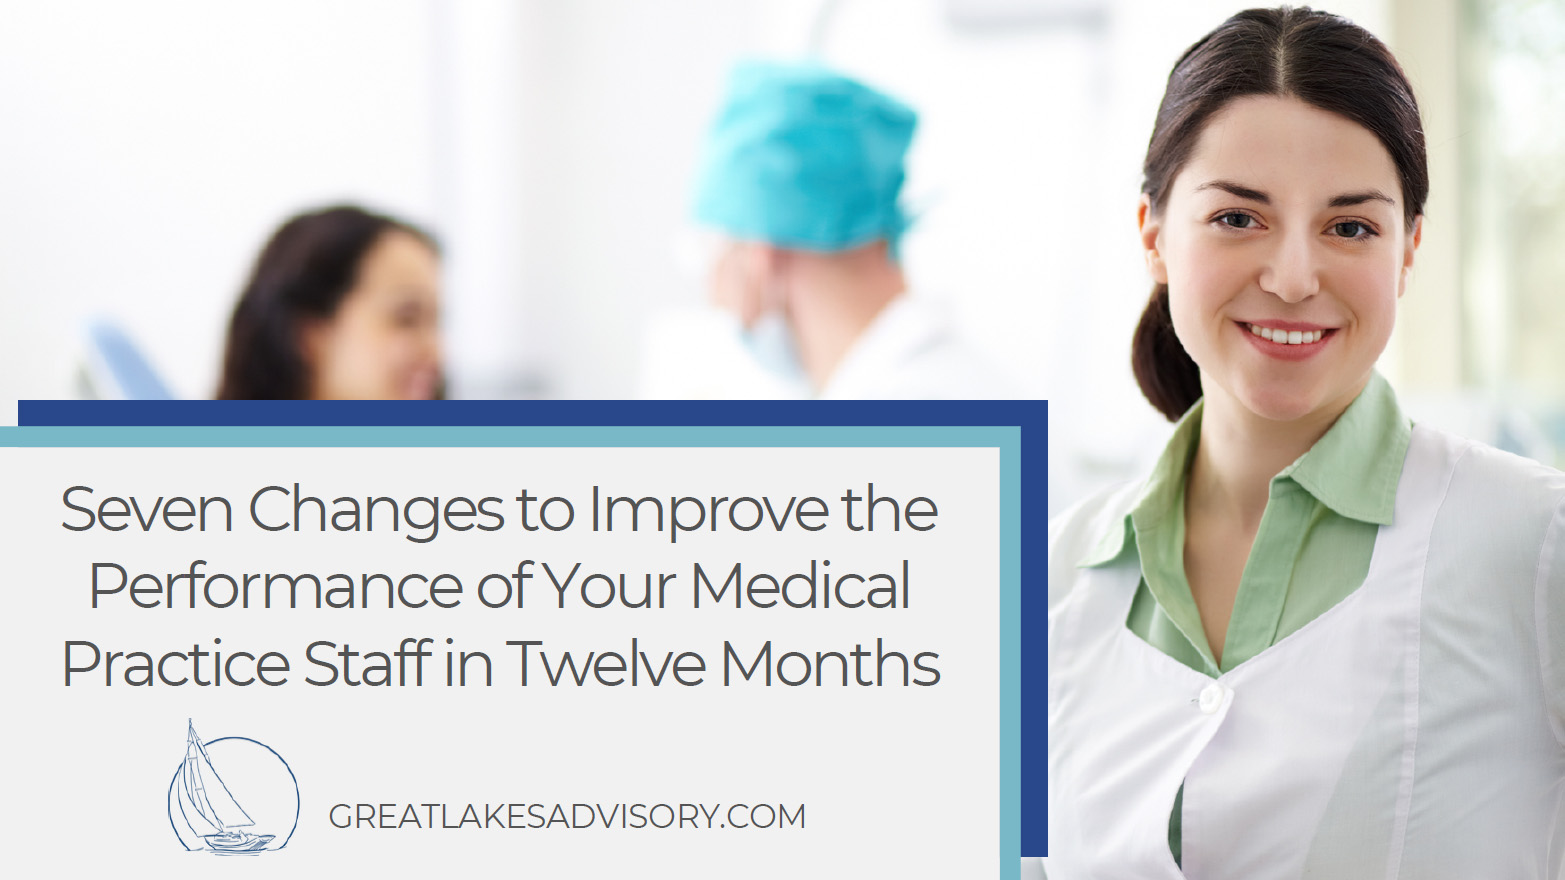 Seven Changes to Improve the Performance of Your Medical Practice Staff in Twelve Months